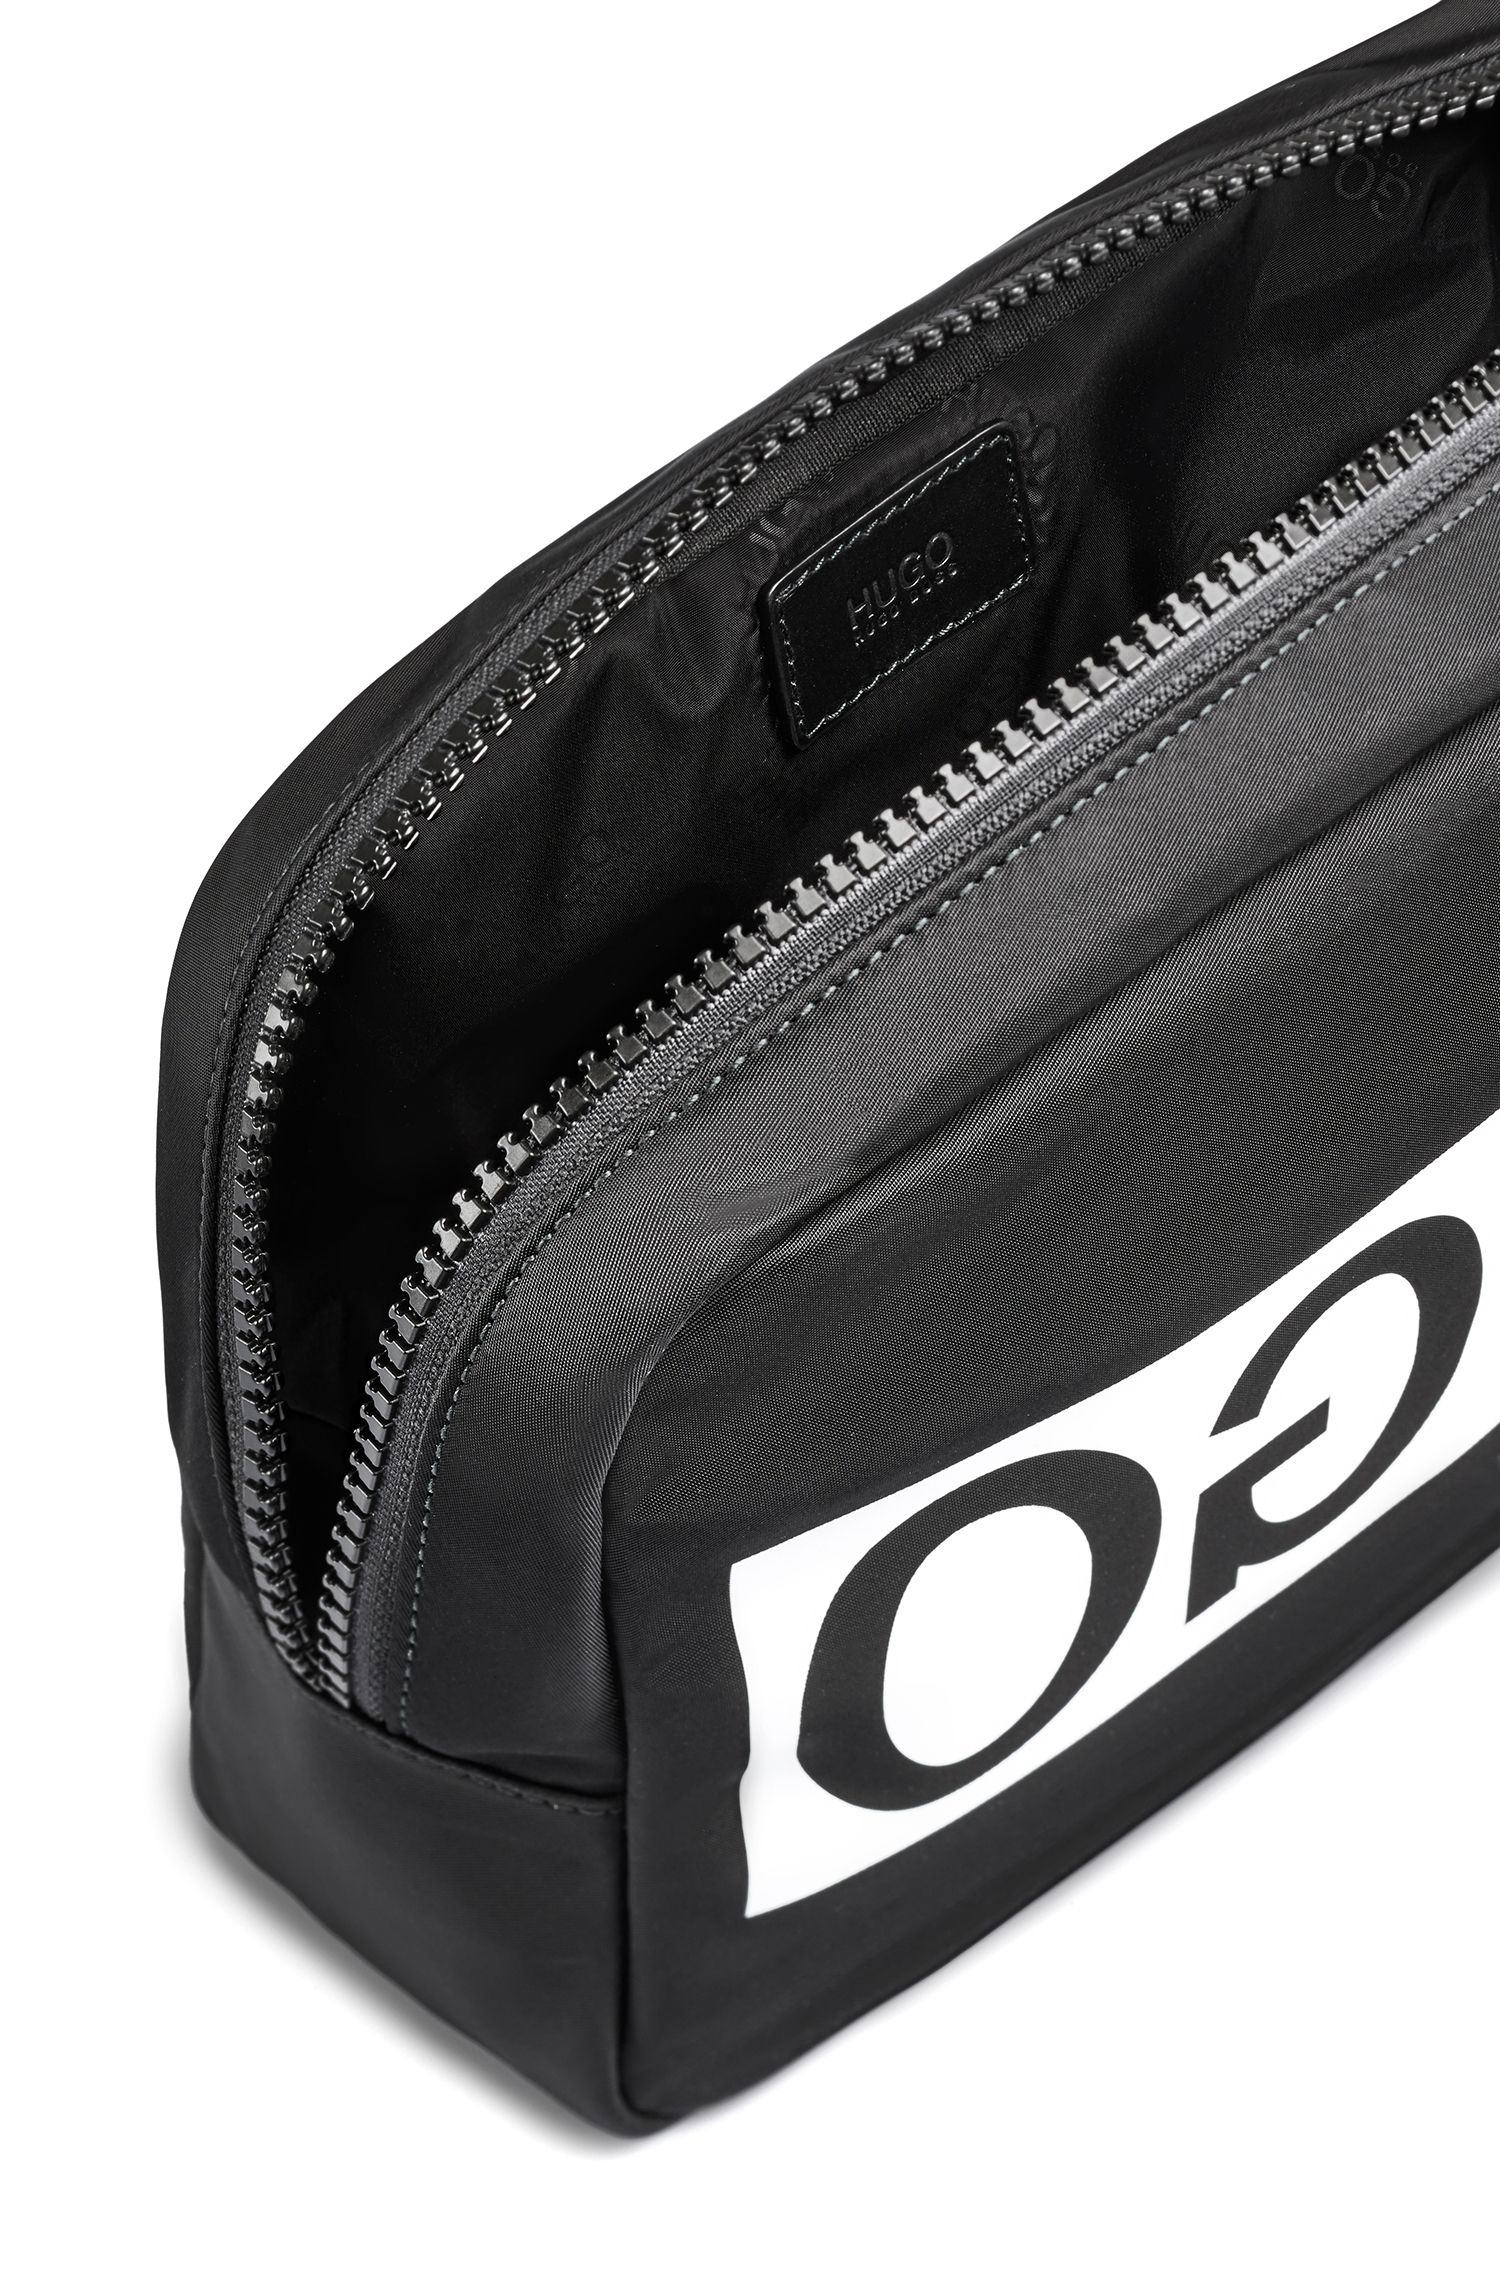 Nylon Toiletry Bag | Tribute Washbag